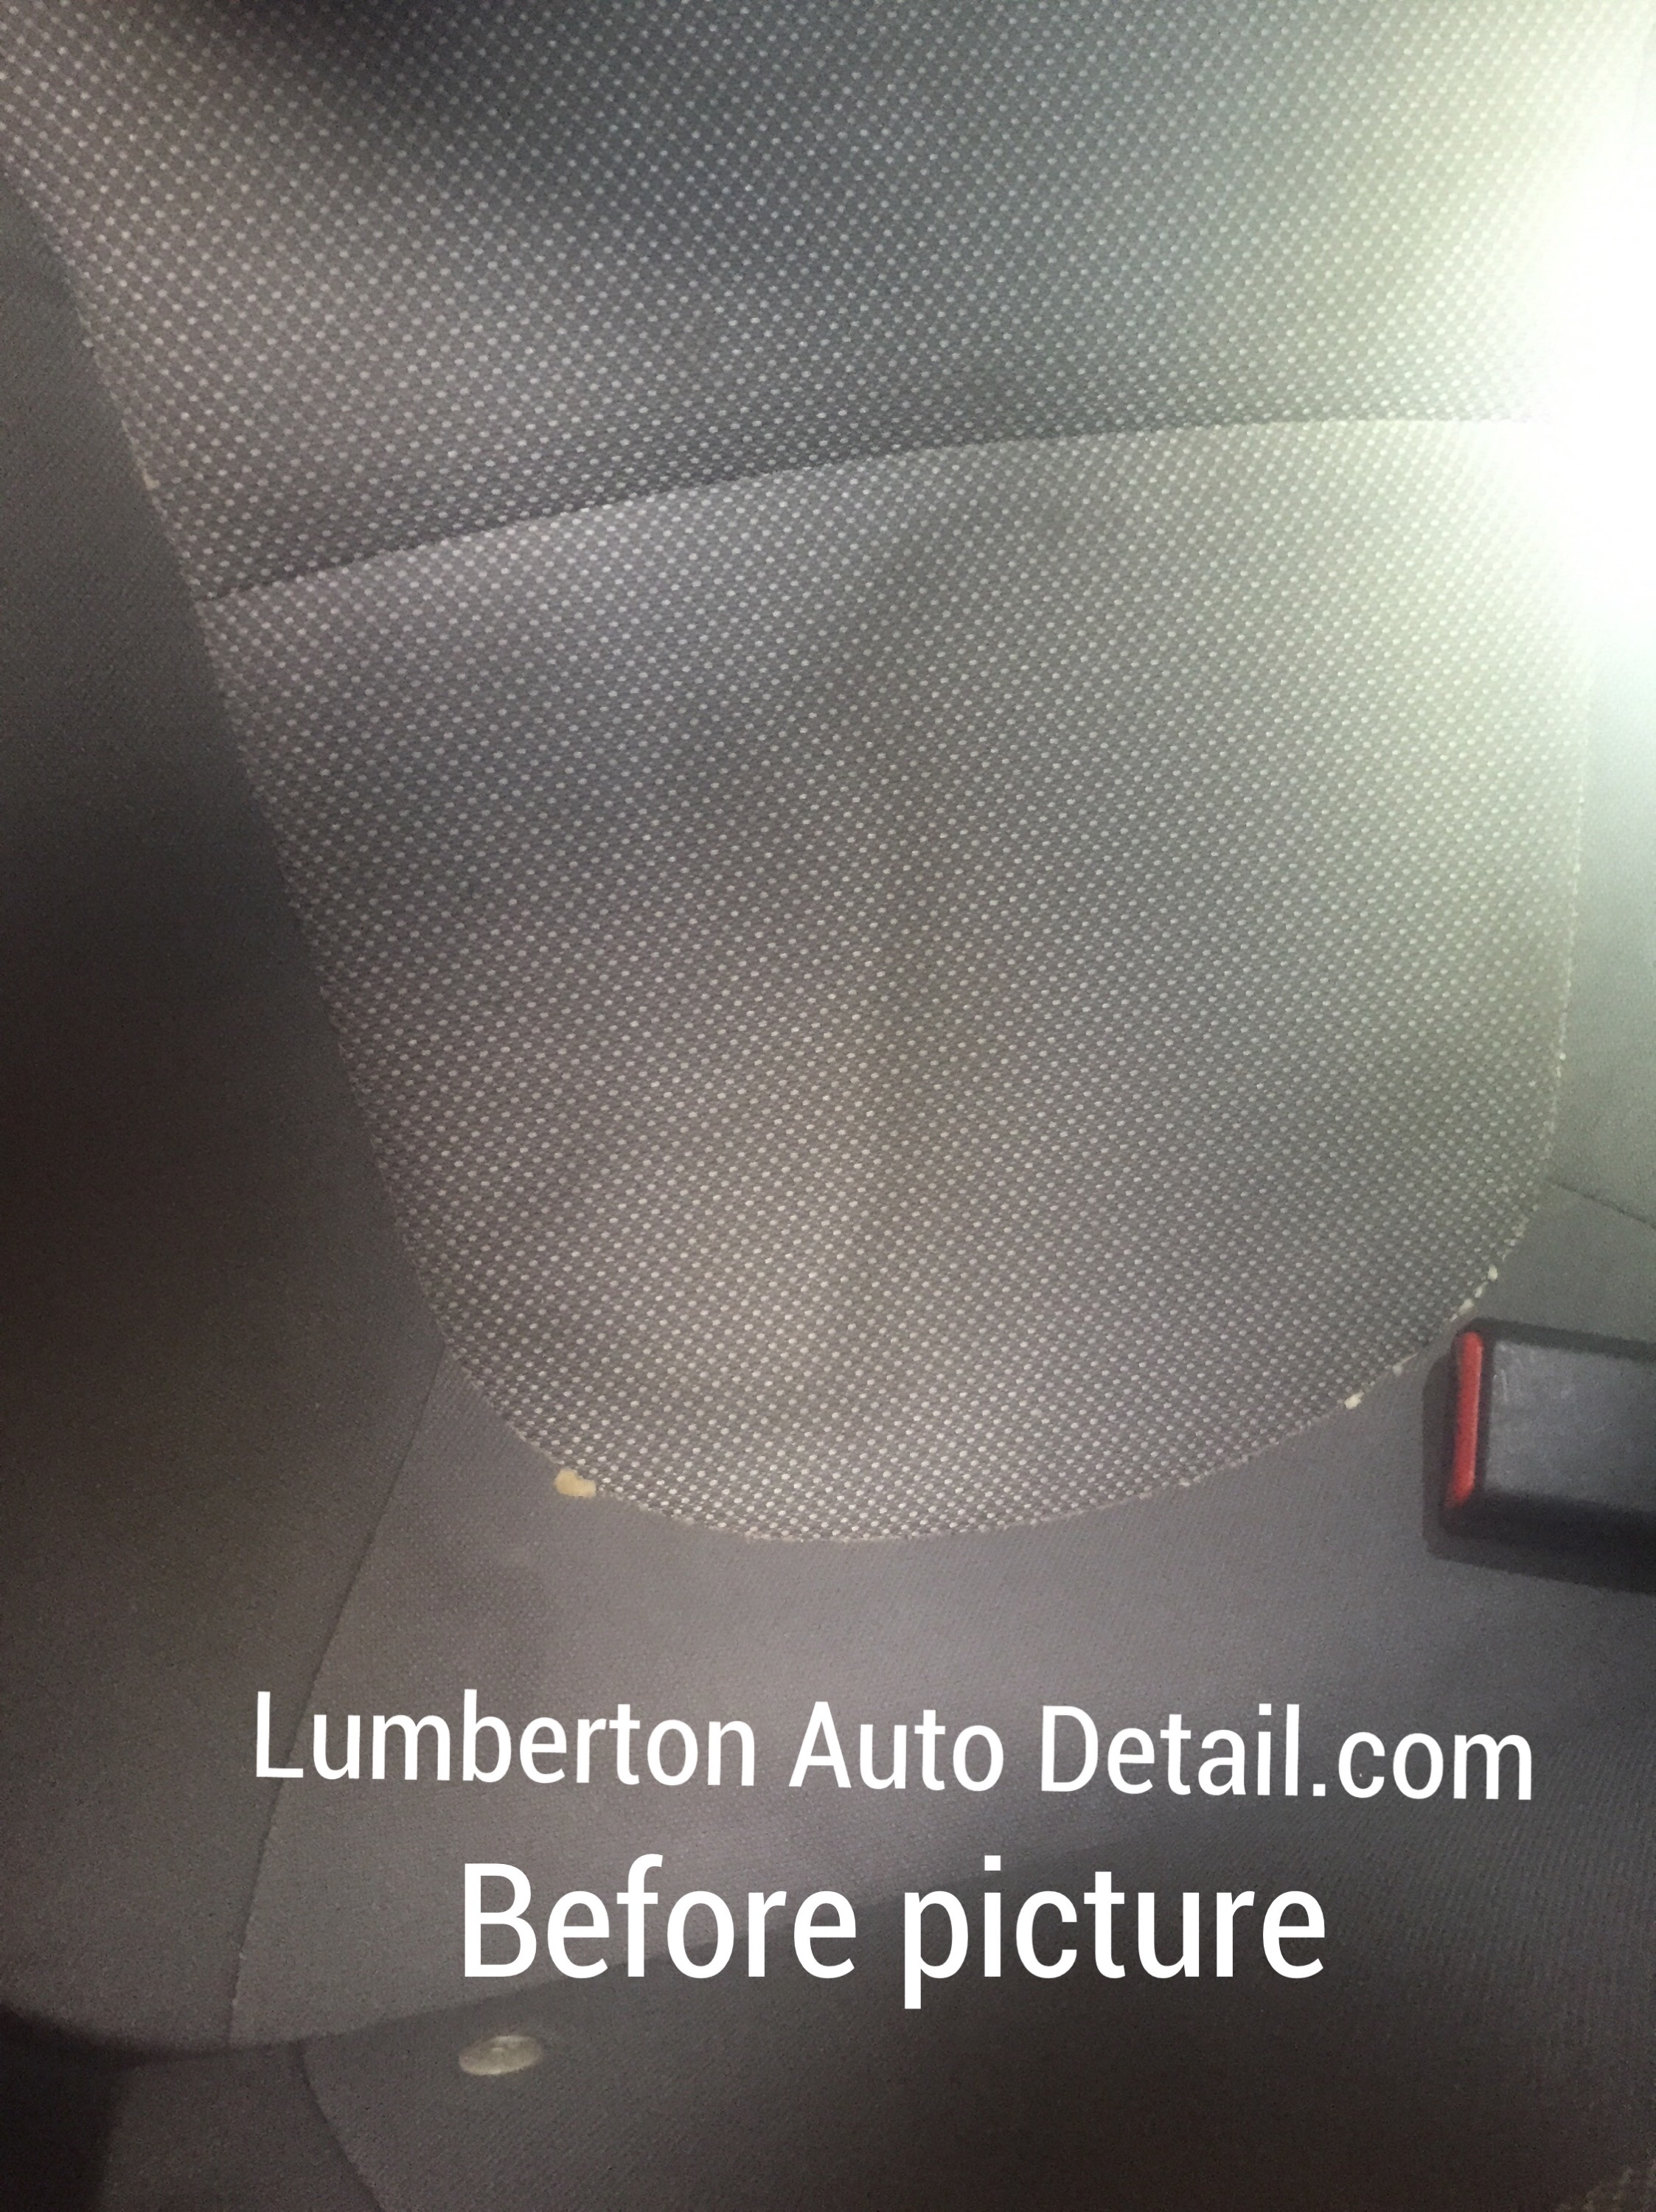 of kia car fayetteville nc new to welcome lallier used in chevrolet dealership reed lumberton